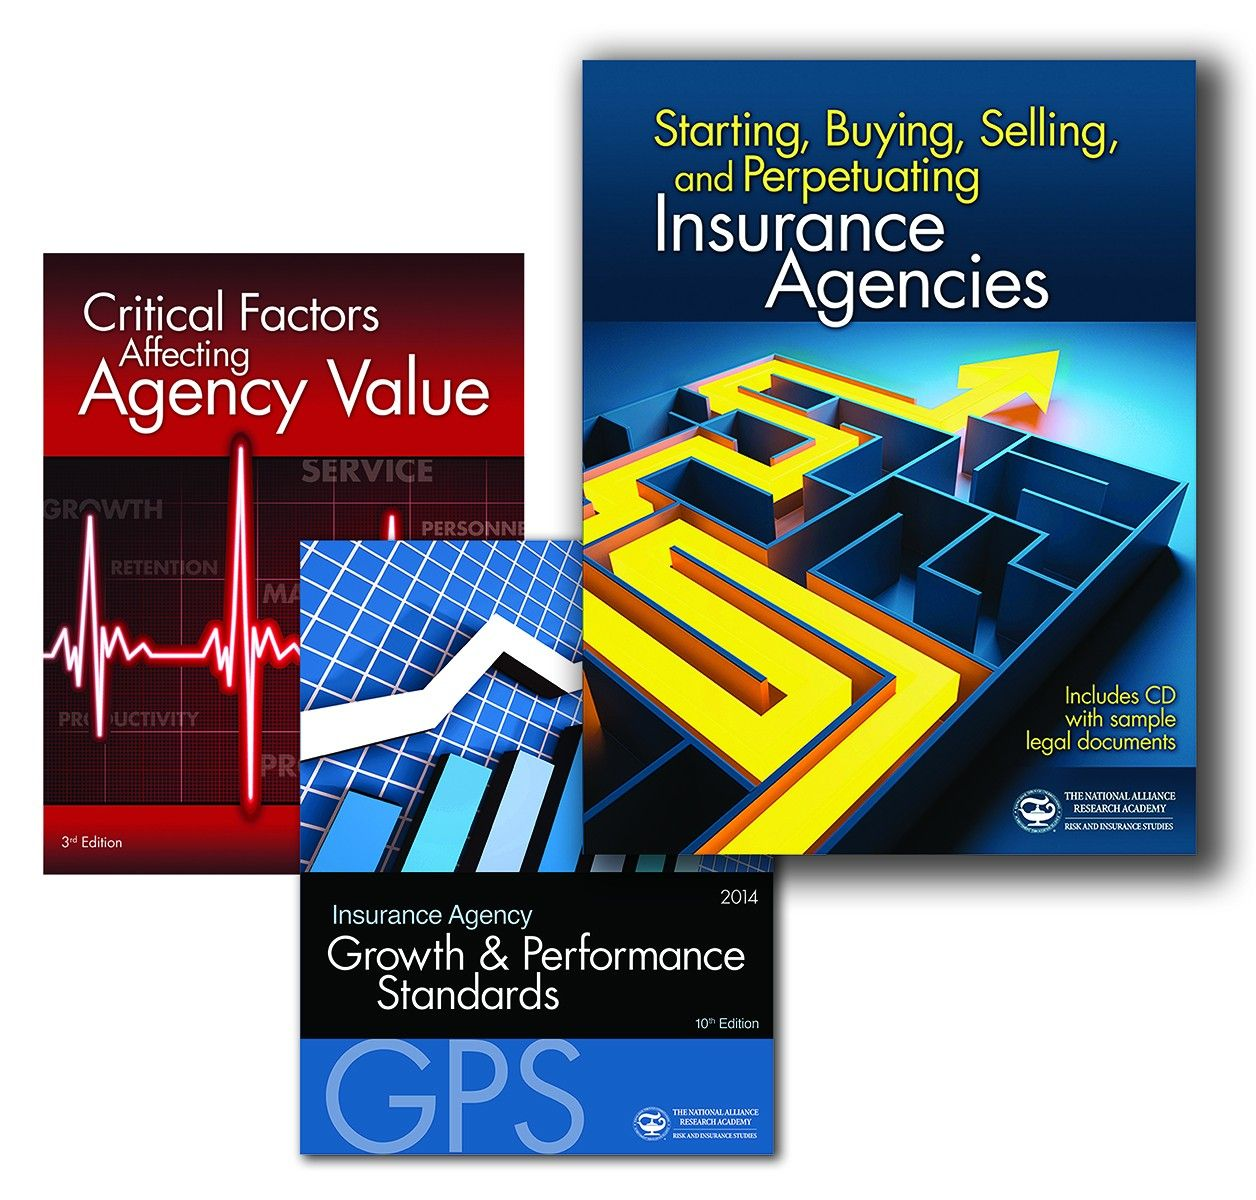 Need guidance making changes and improvements? The Agency